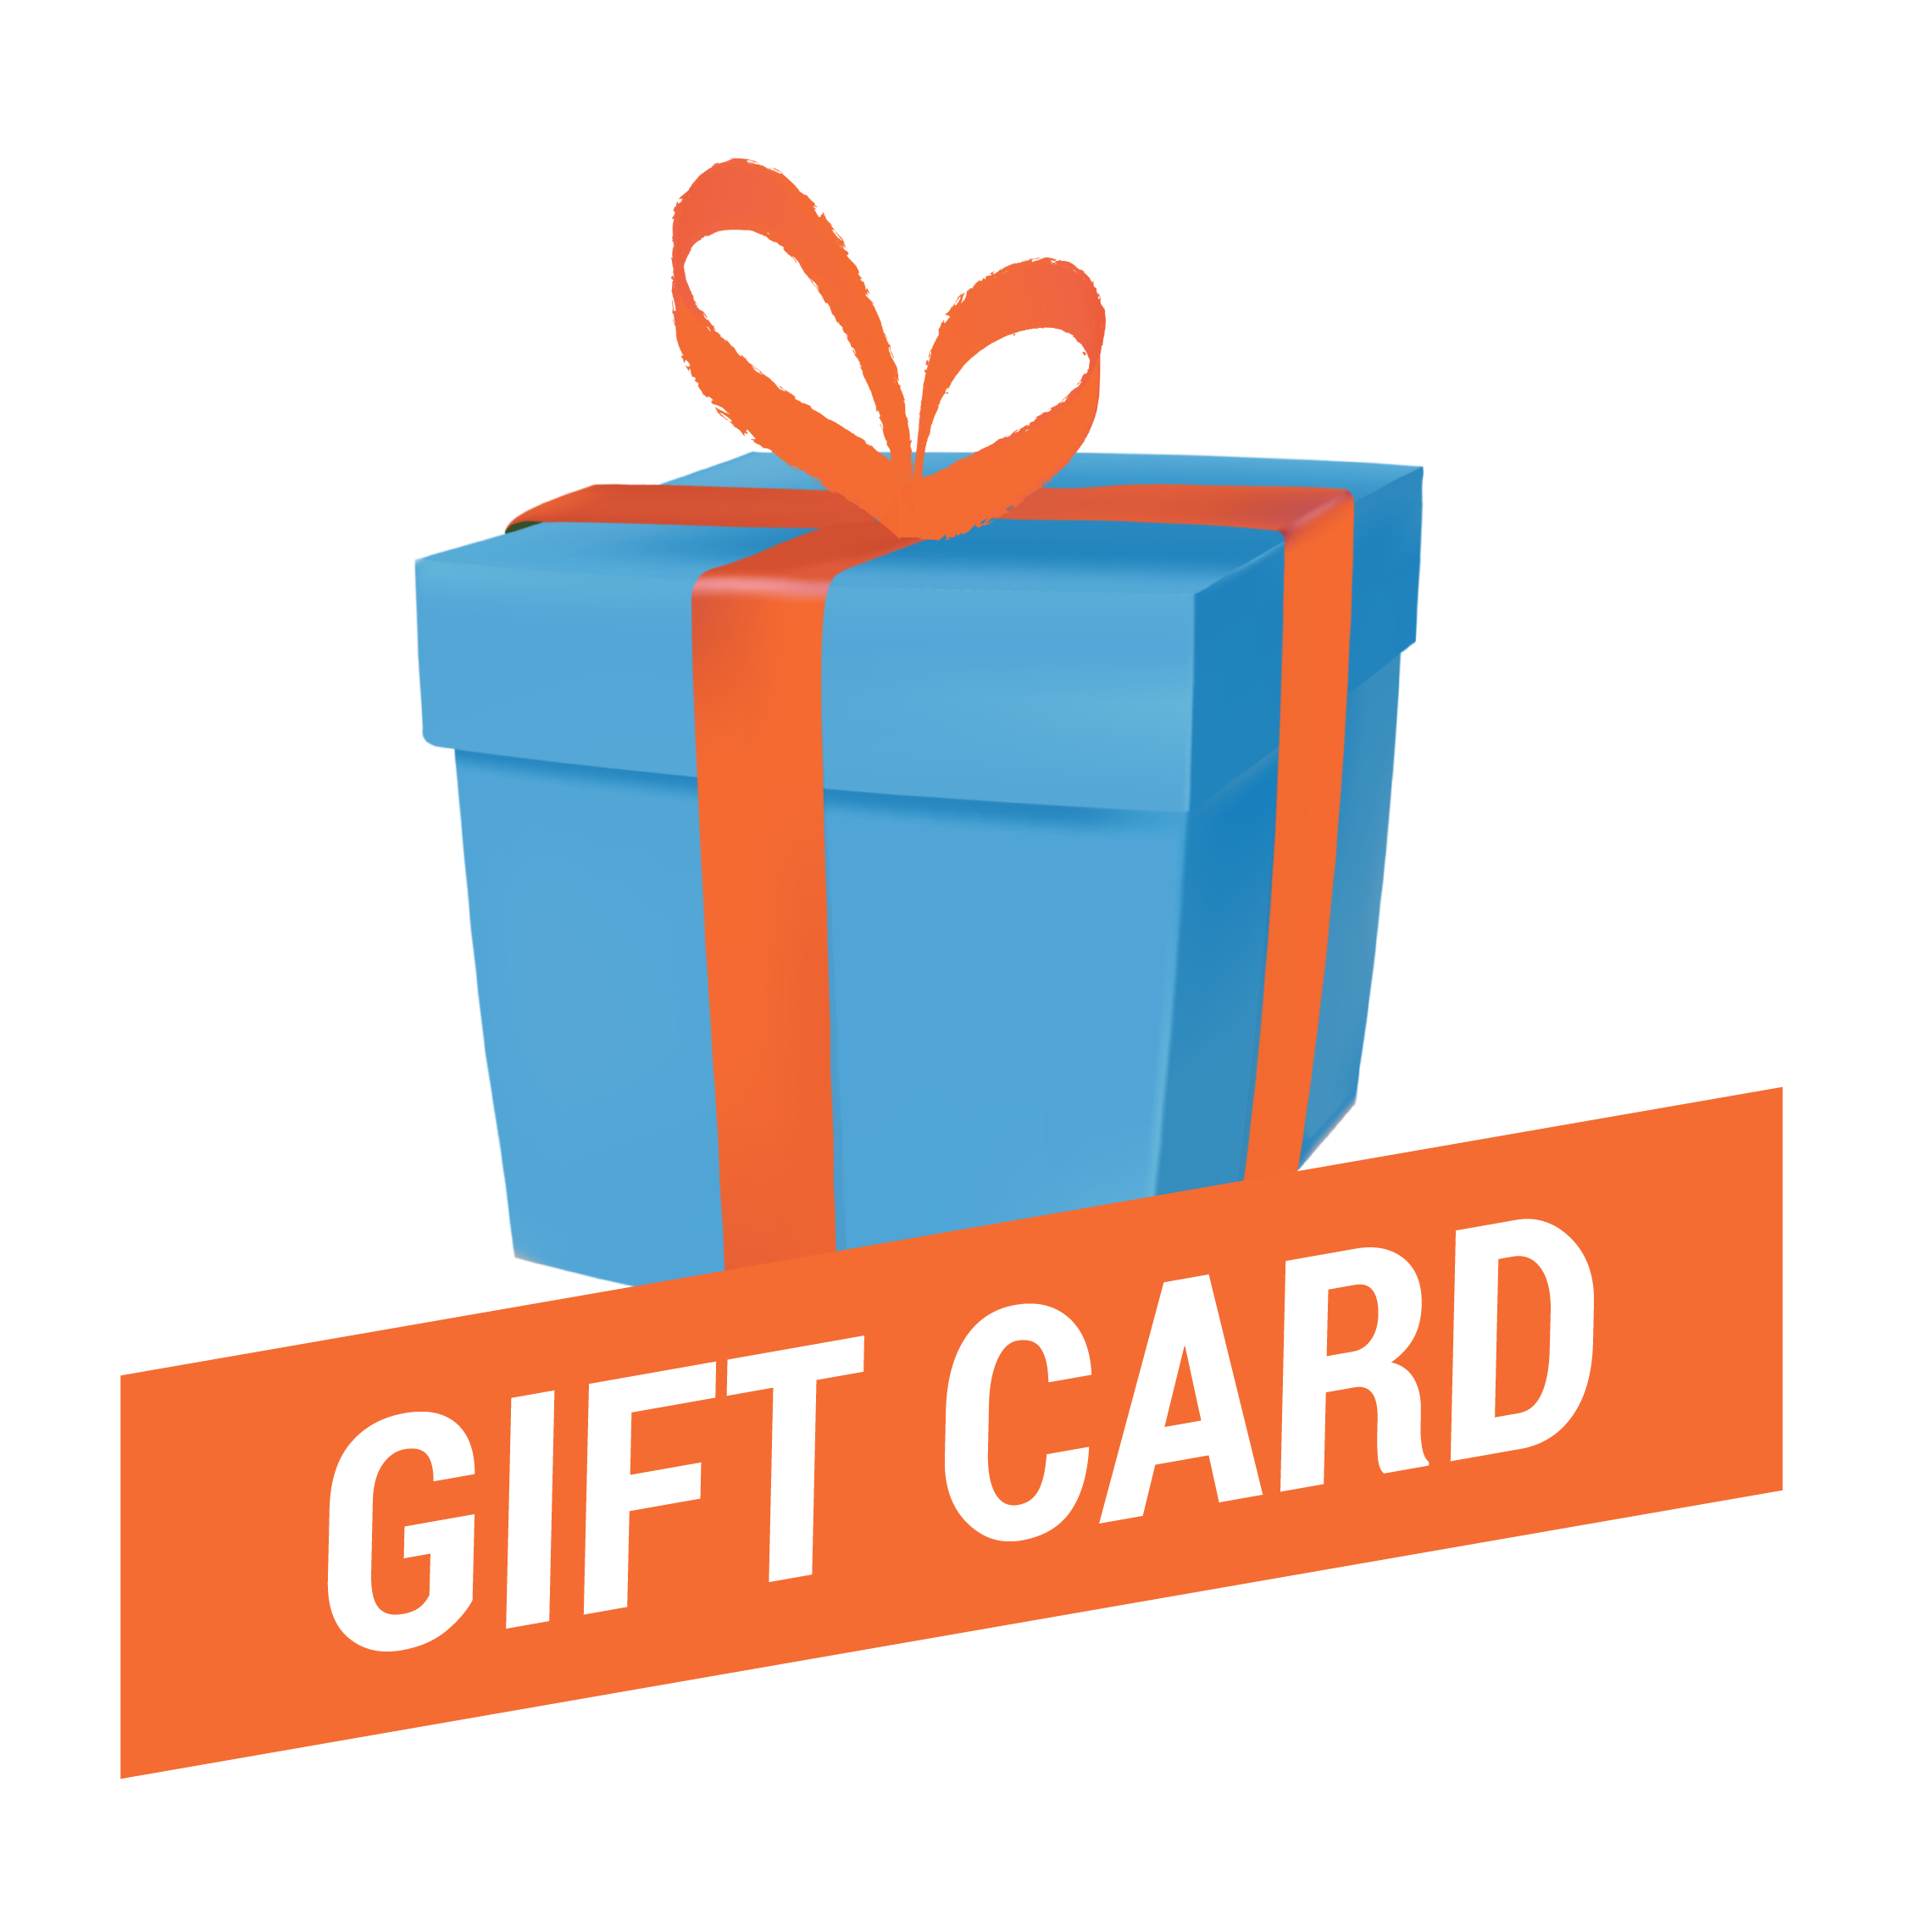 Gift clipart gift card. Decathlon sports shoes gear